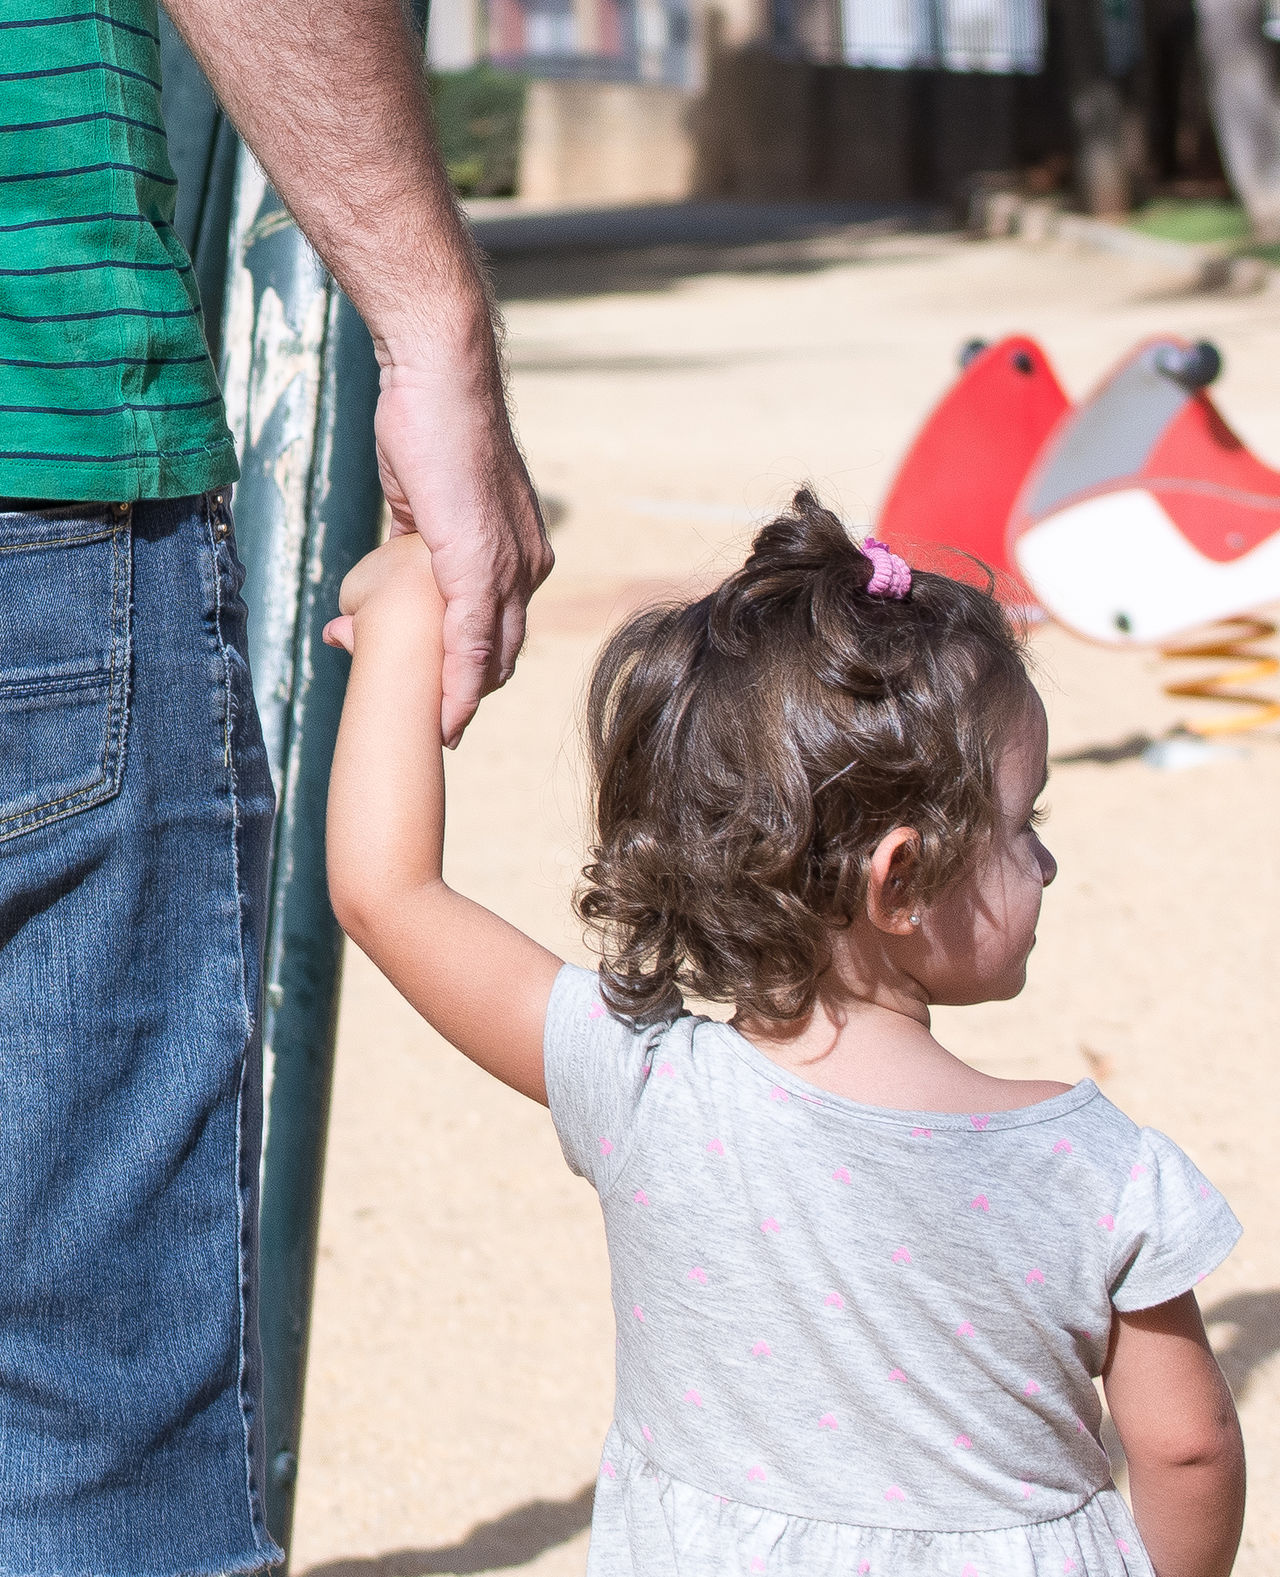 Midsection of father holding hand on daughter in park